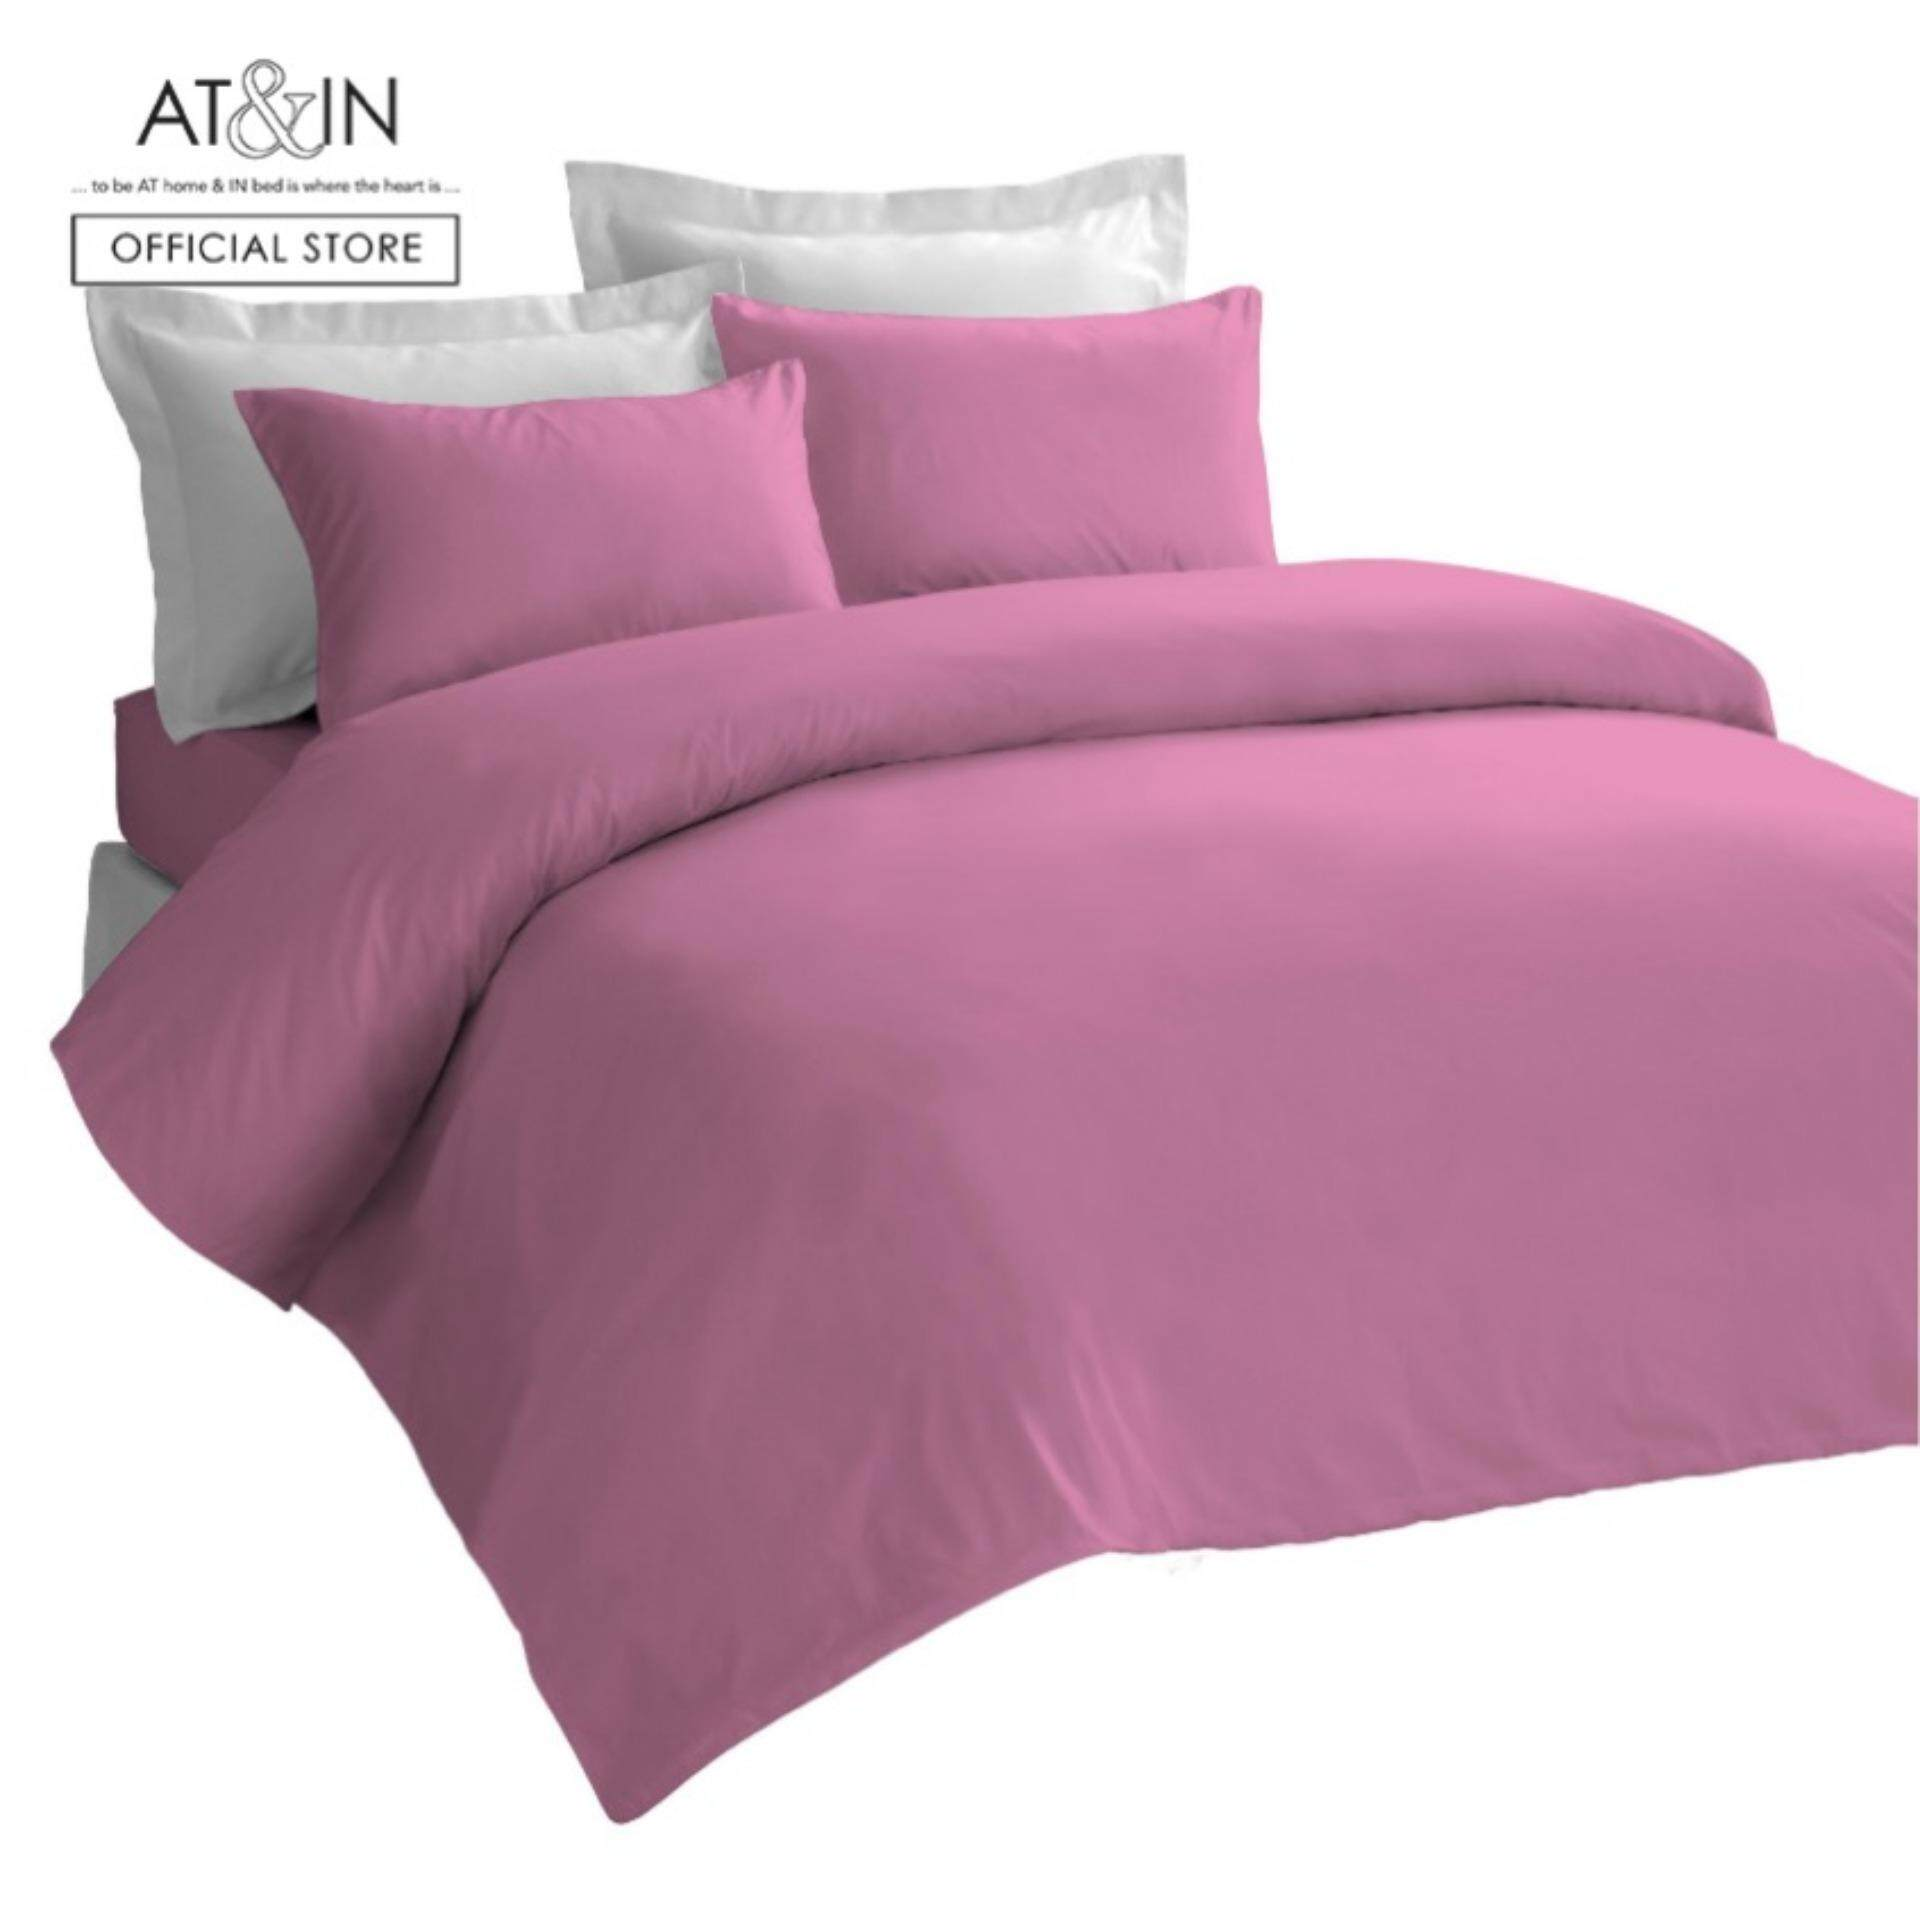 Home Bedding Buy At Best Price In Malaysia Www Bedcover Set Silk Star Oringina 200x200 Atin Colourtone King Fitted Sheet Honey Pink